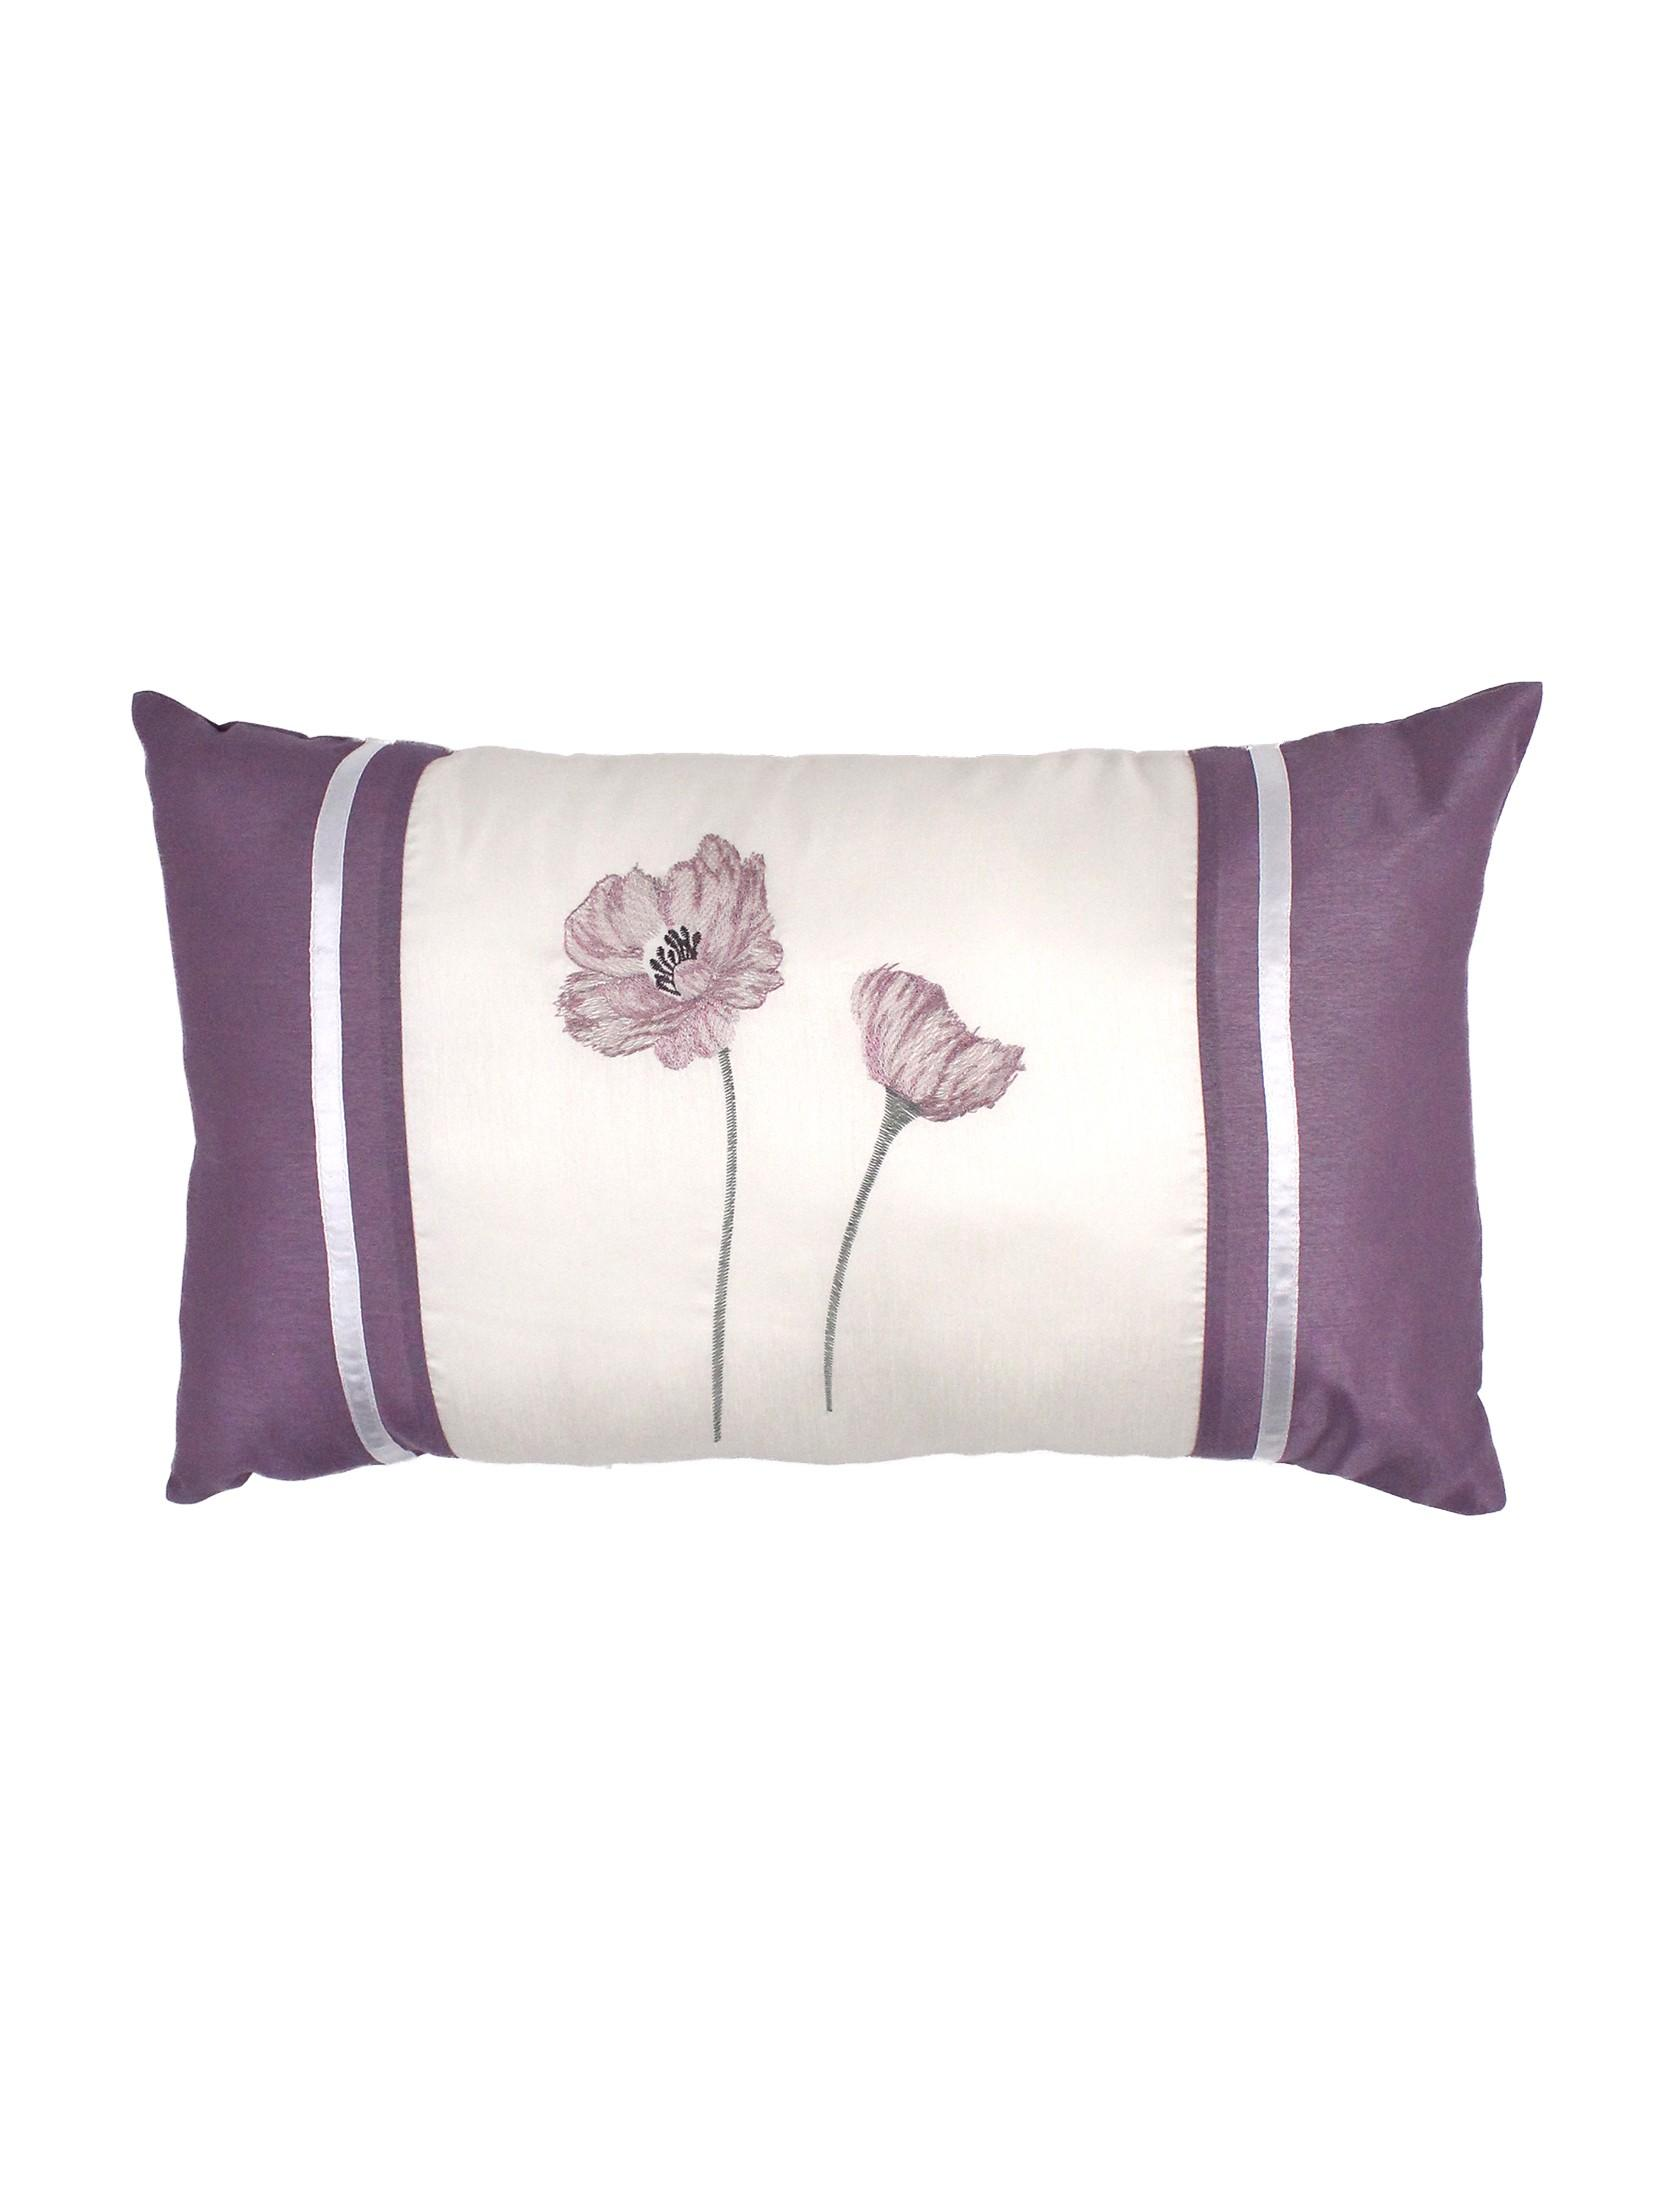 Embroidered Poppy Bed Cushion Heather Ponden Homes : embroideredpoppyheathercushion1 from www.pondenhome.co.uk size 1675 x 2200 jpeg 239kB